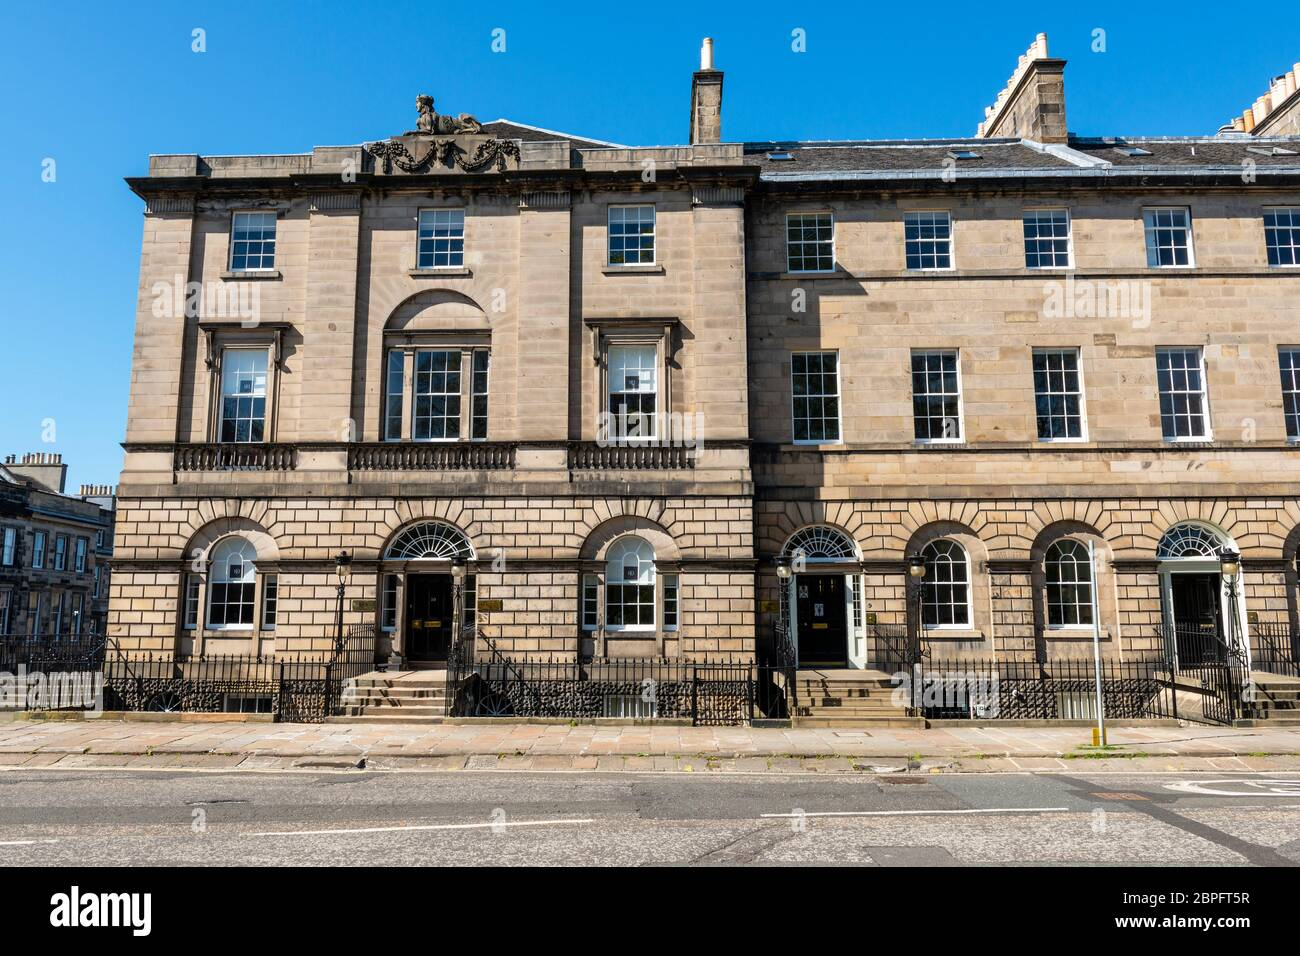 Georgian Townhouse on north side of Charlotte Square, Edinburgh New Town, Scotland, UK Stock Photo